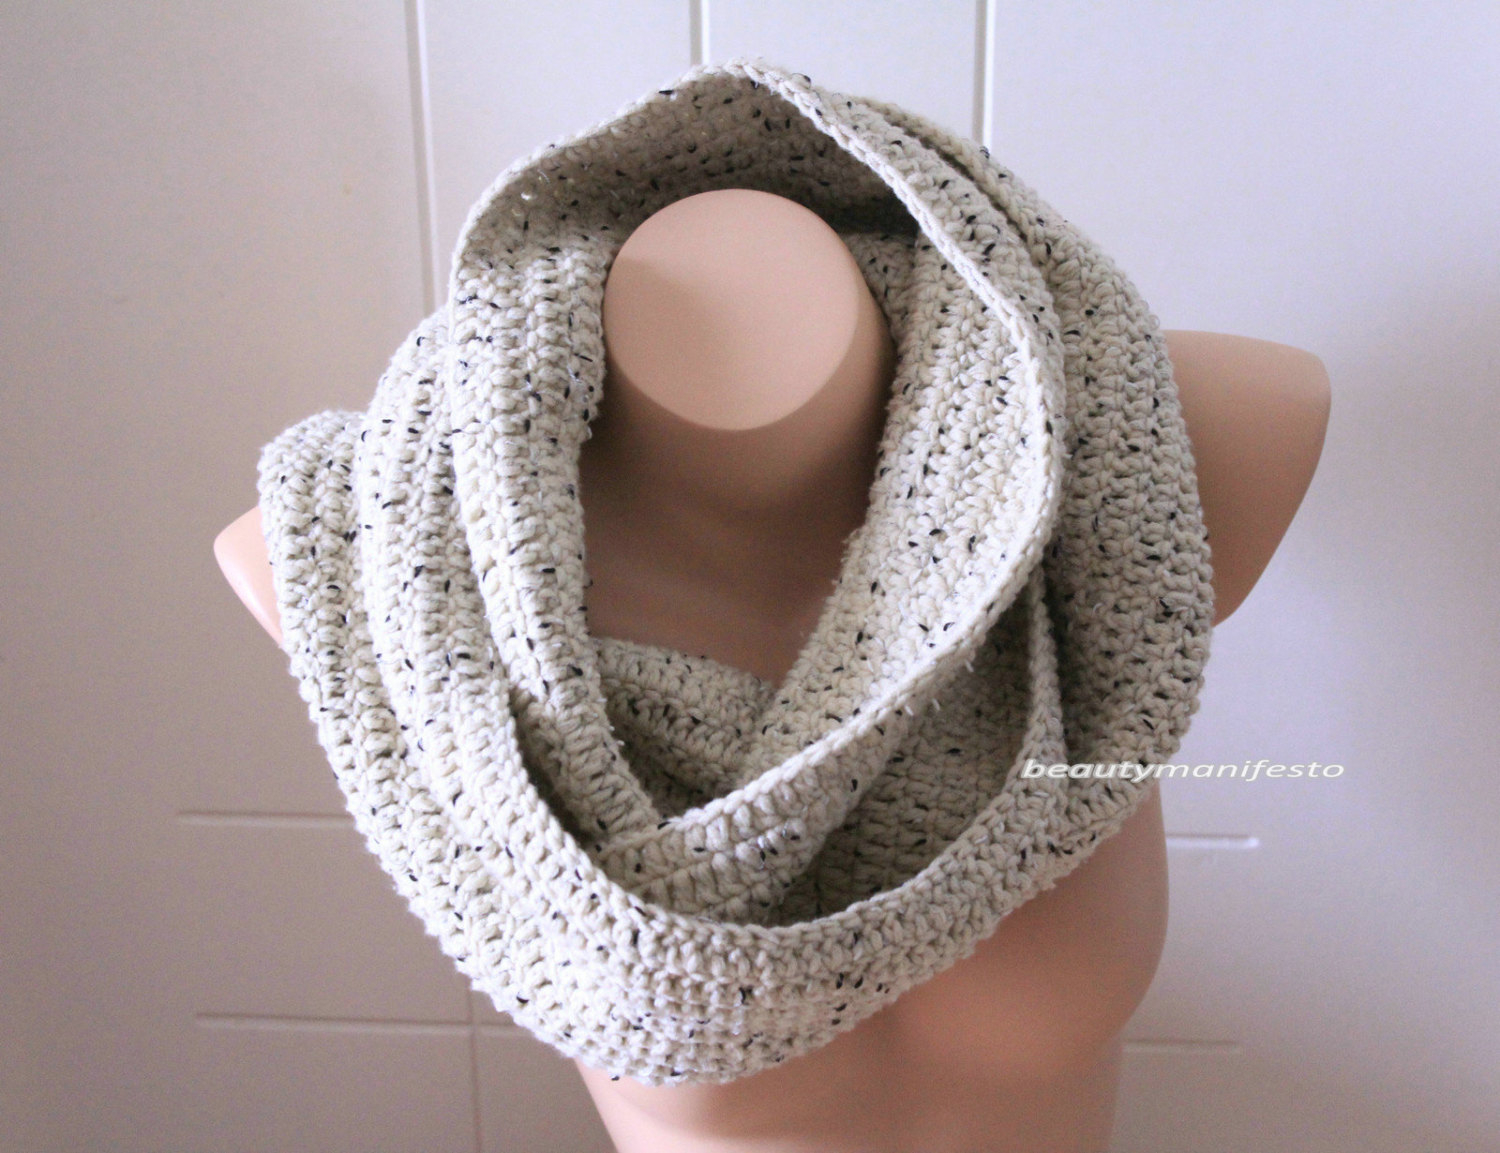 Infinity Scarf Knitting Pattern Chunky Free Oversized Knit Scarfoversized Chunky Infinity Scarf In Oatmeal Brown Colorcrochet Infinity Scarves Mens Scarvesfree Shpping